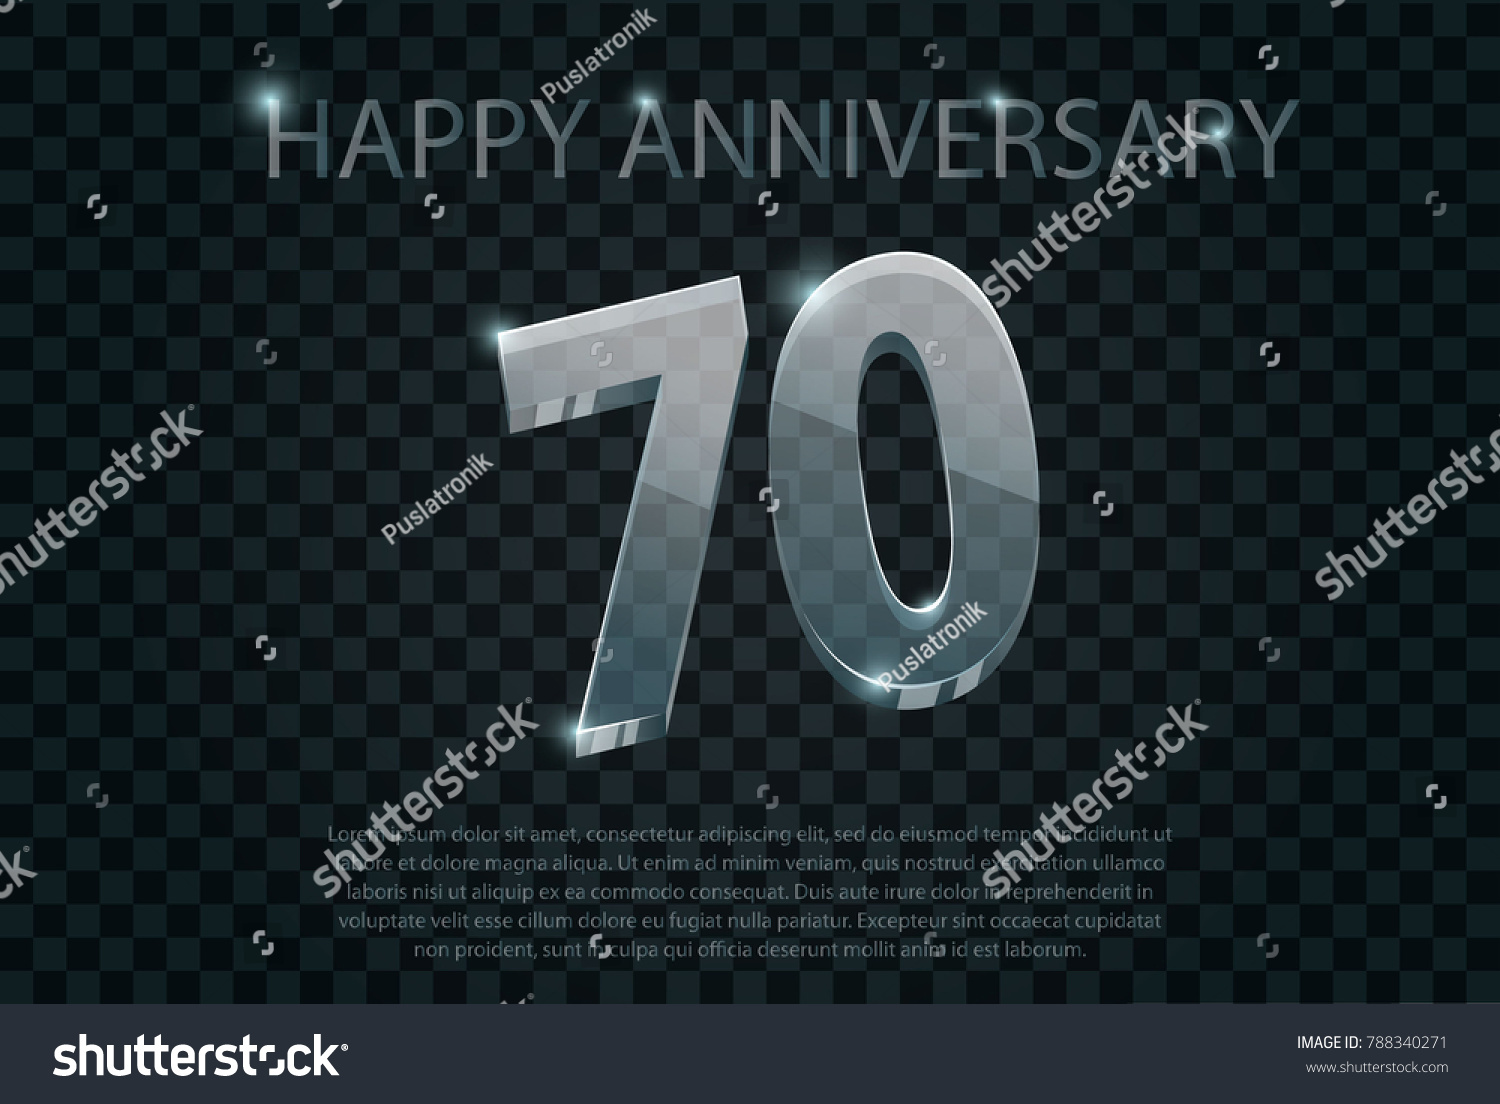 Happy anniversary birthday celebration 70th years stock vector happy anniversary birthday celebration 70th years inscription of glass with text example on transparent biocorpaavc